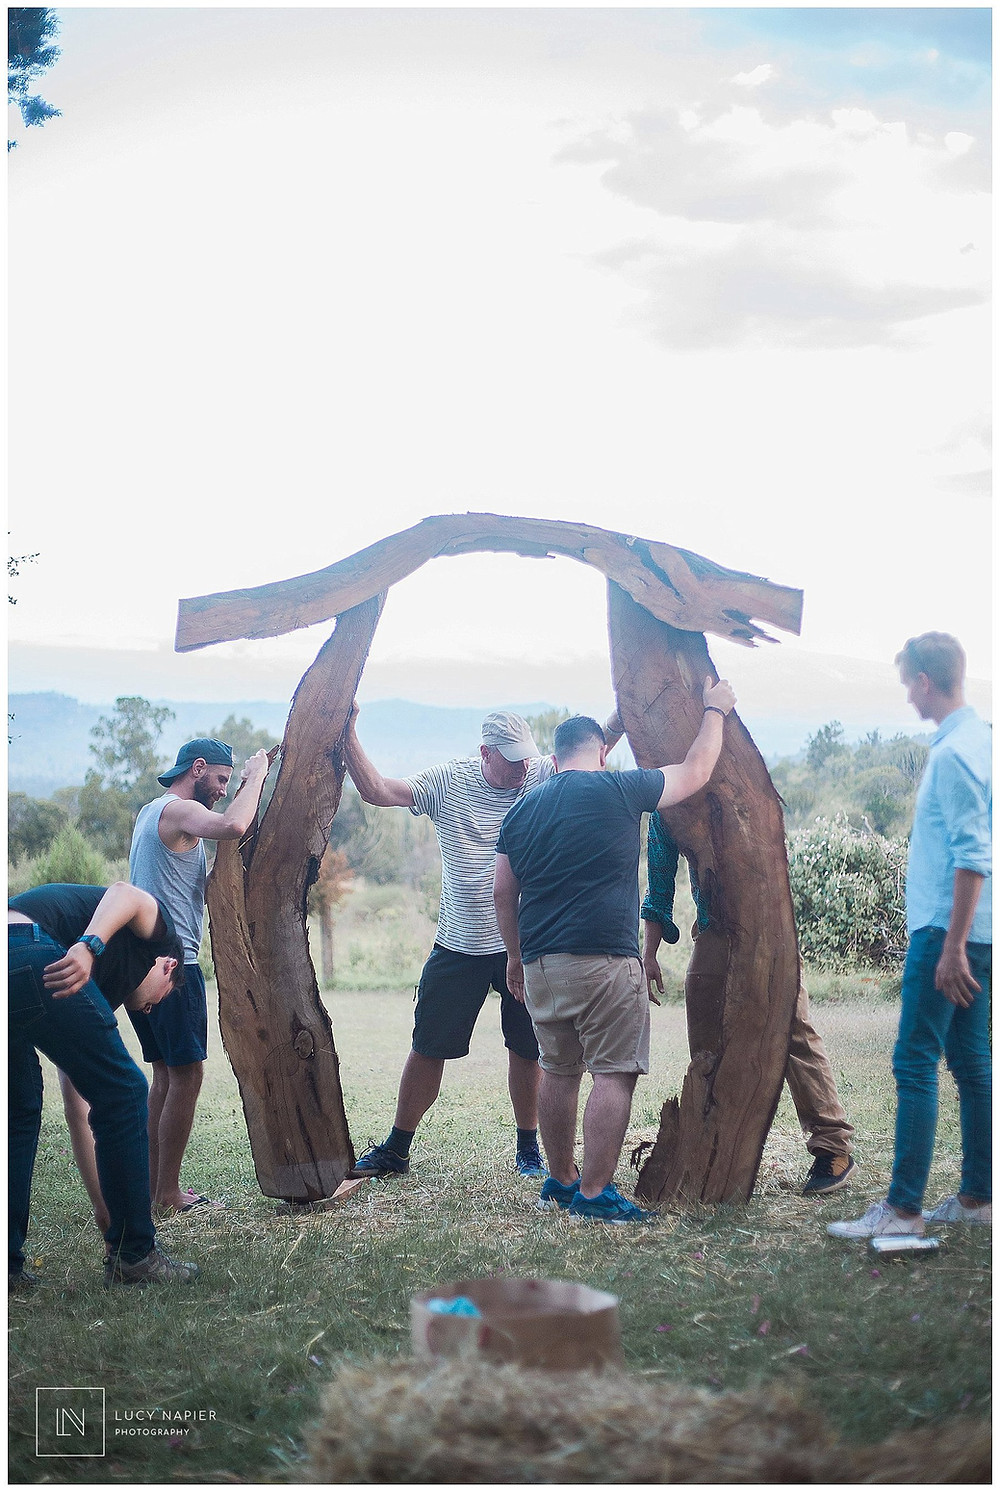 The wedding arch is put up by guests